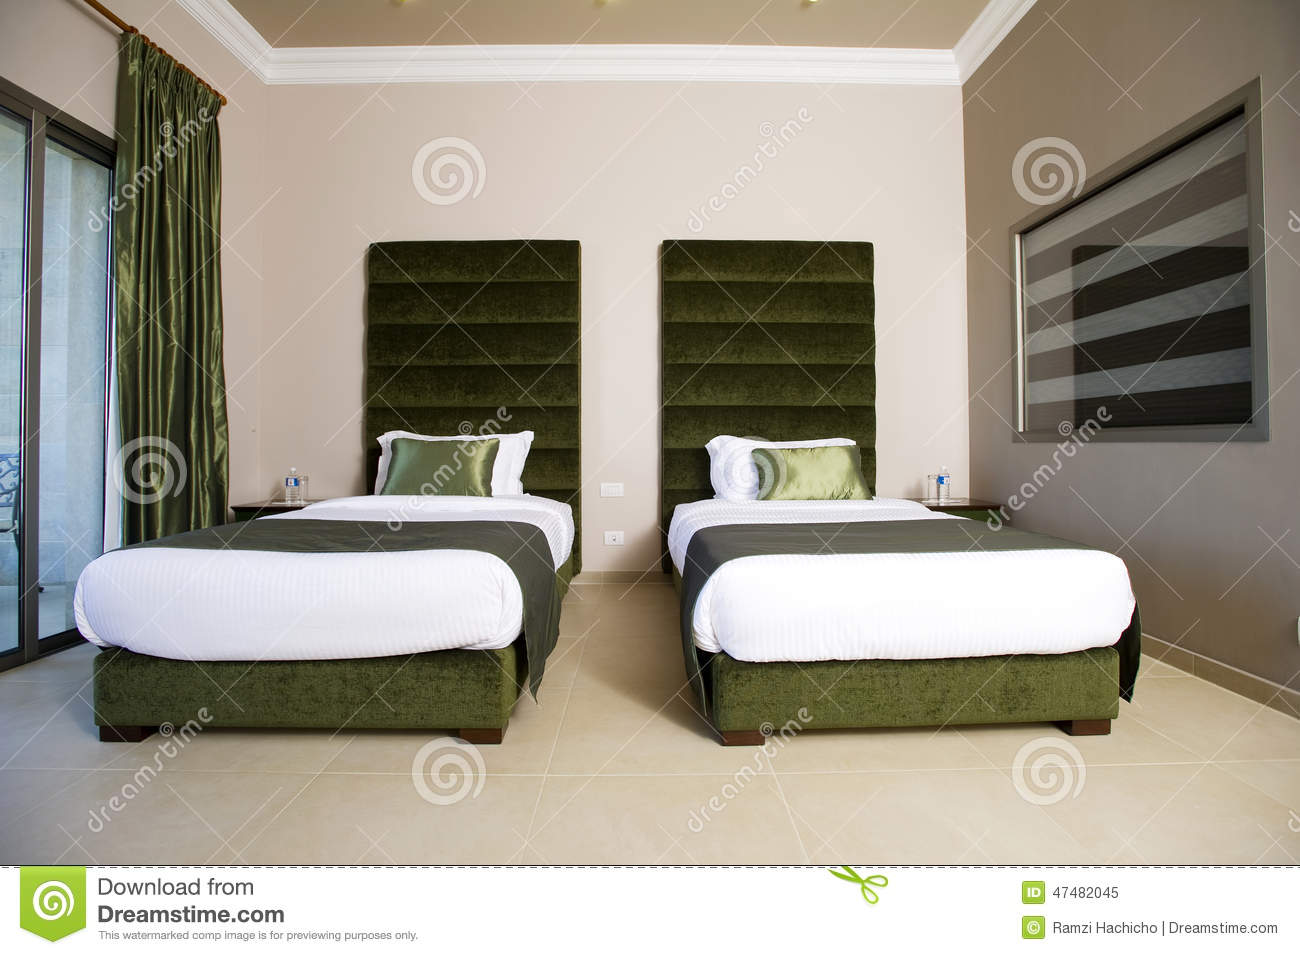 Luxurious hotel bedroom with balconies 5 stars luxury Meuble 5 etoile mnihla